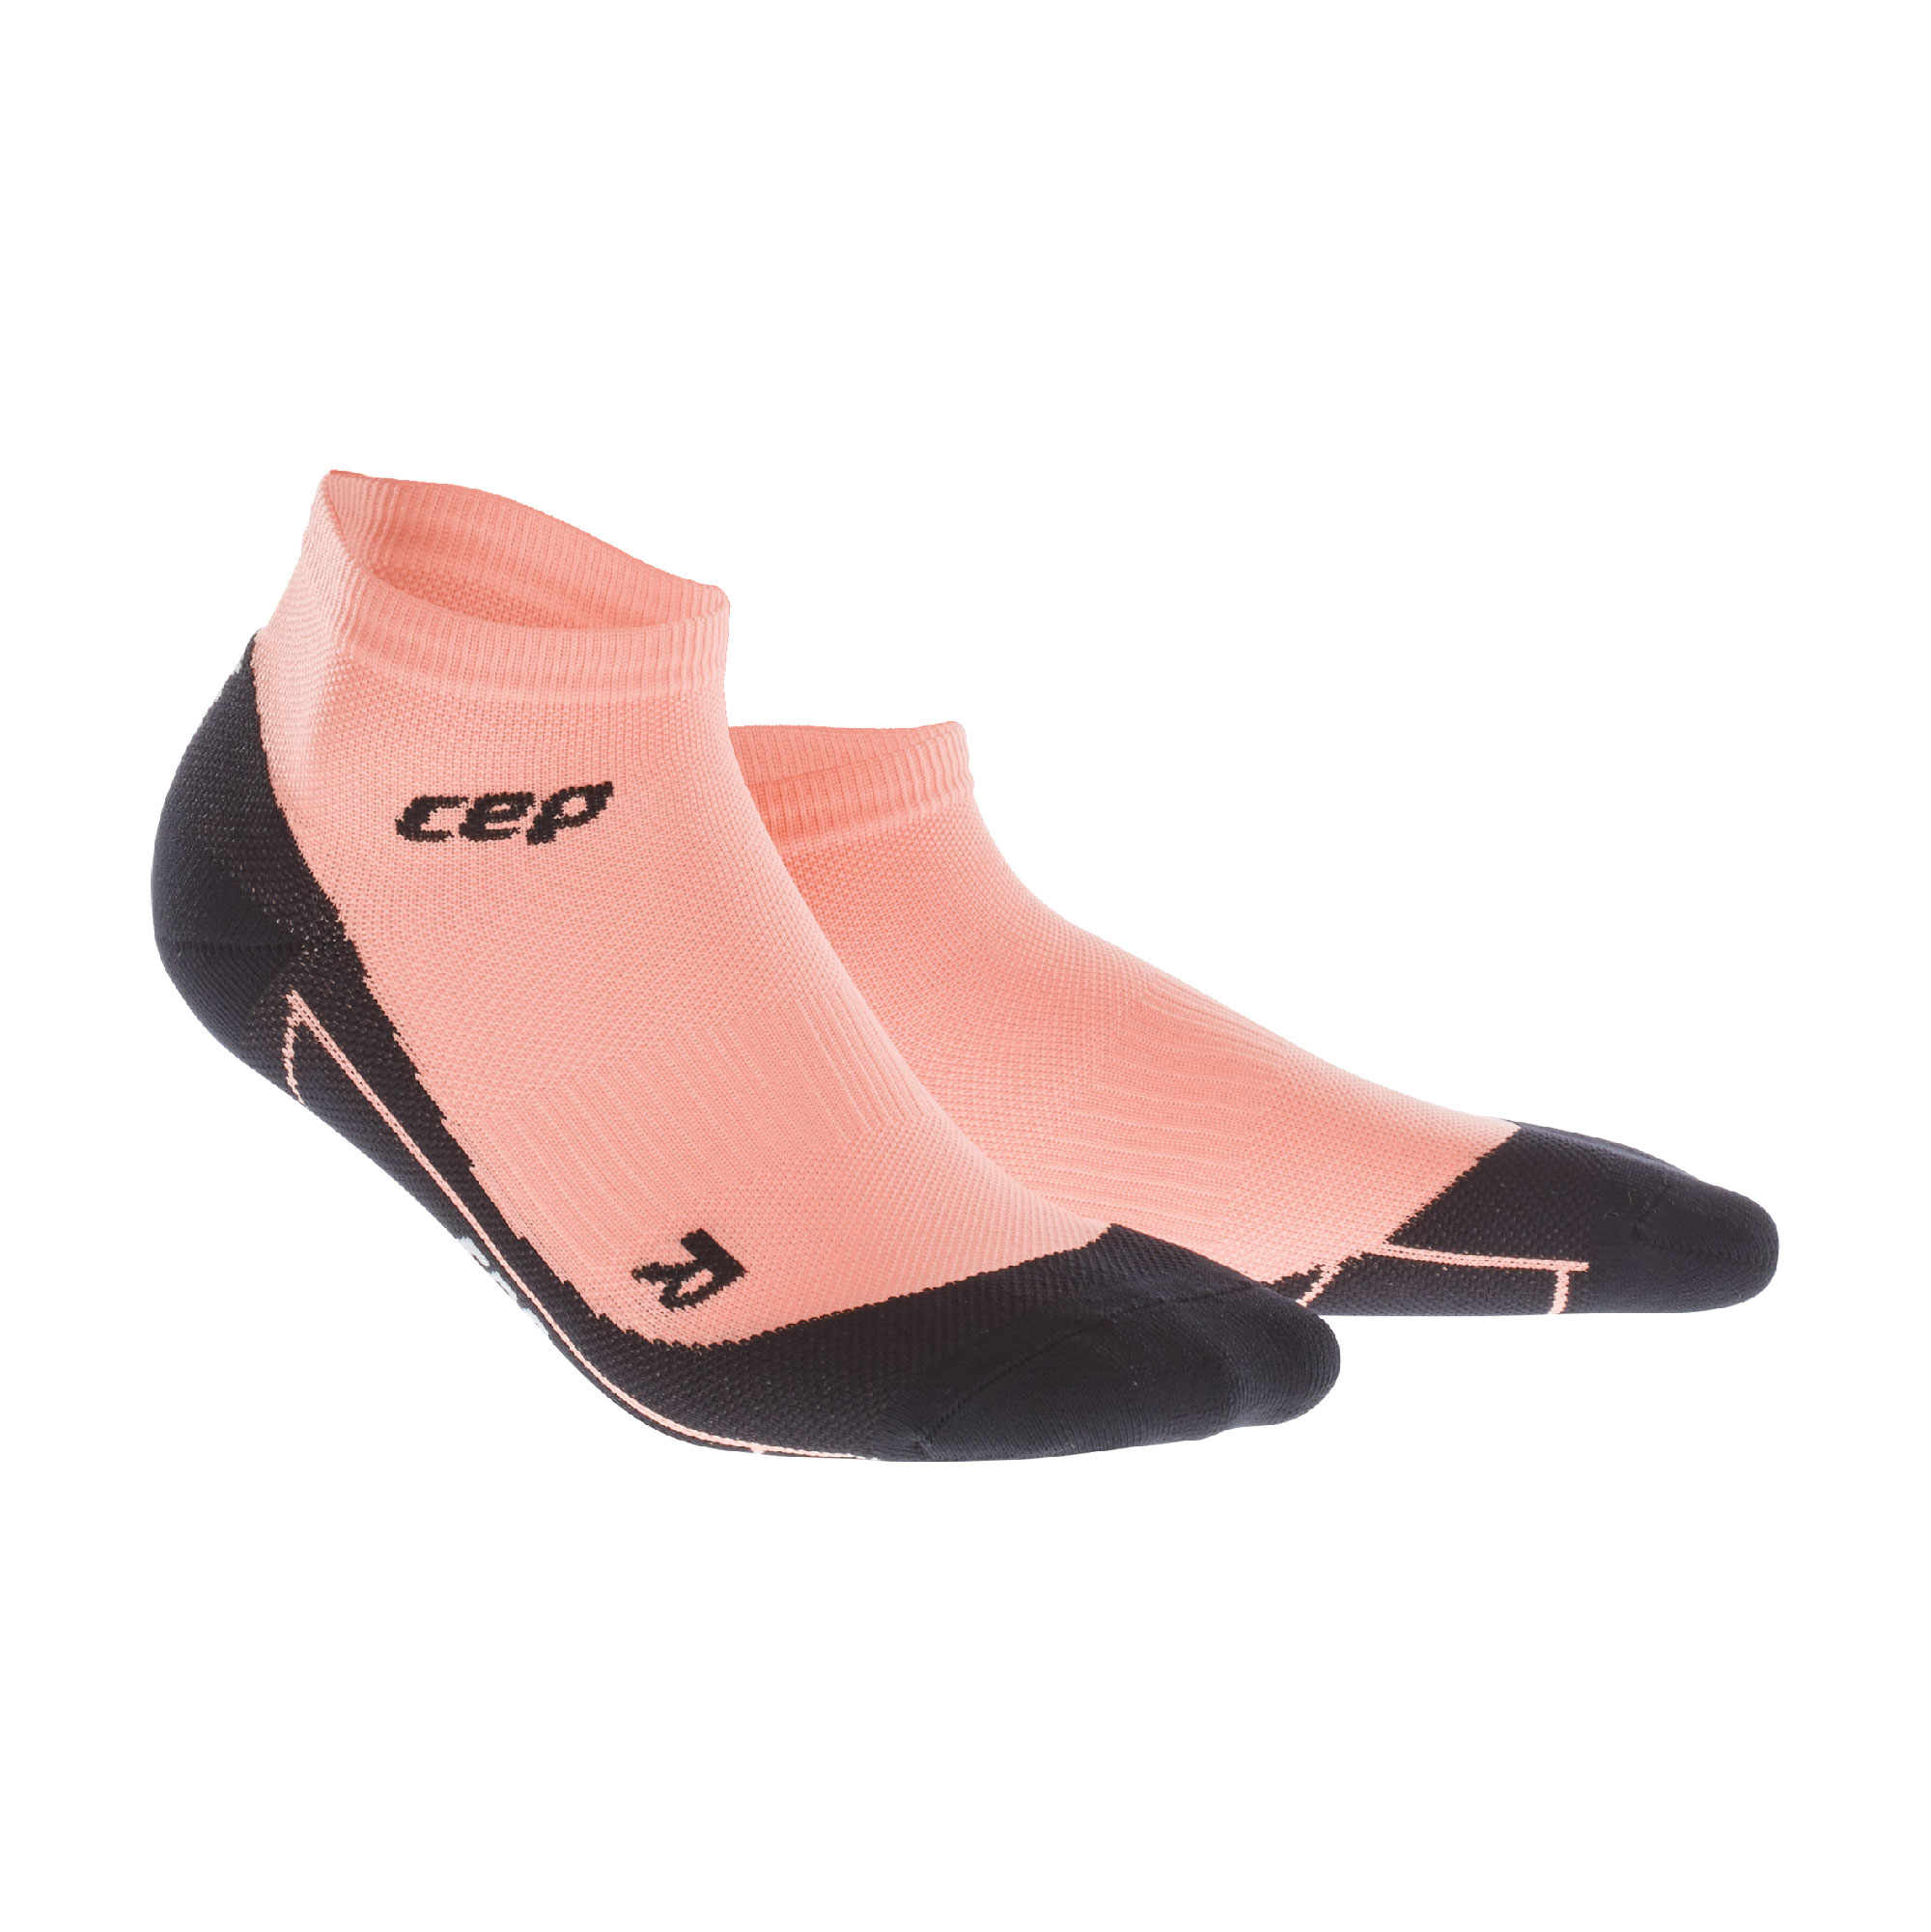 PASTEL LOW CUT SOCKS | WOMEN